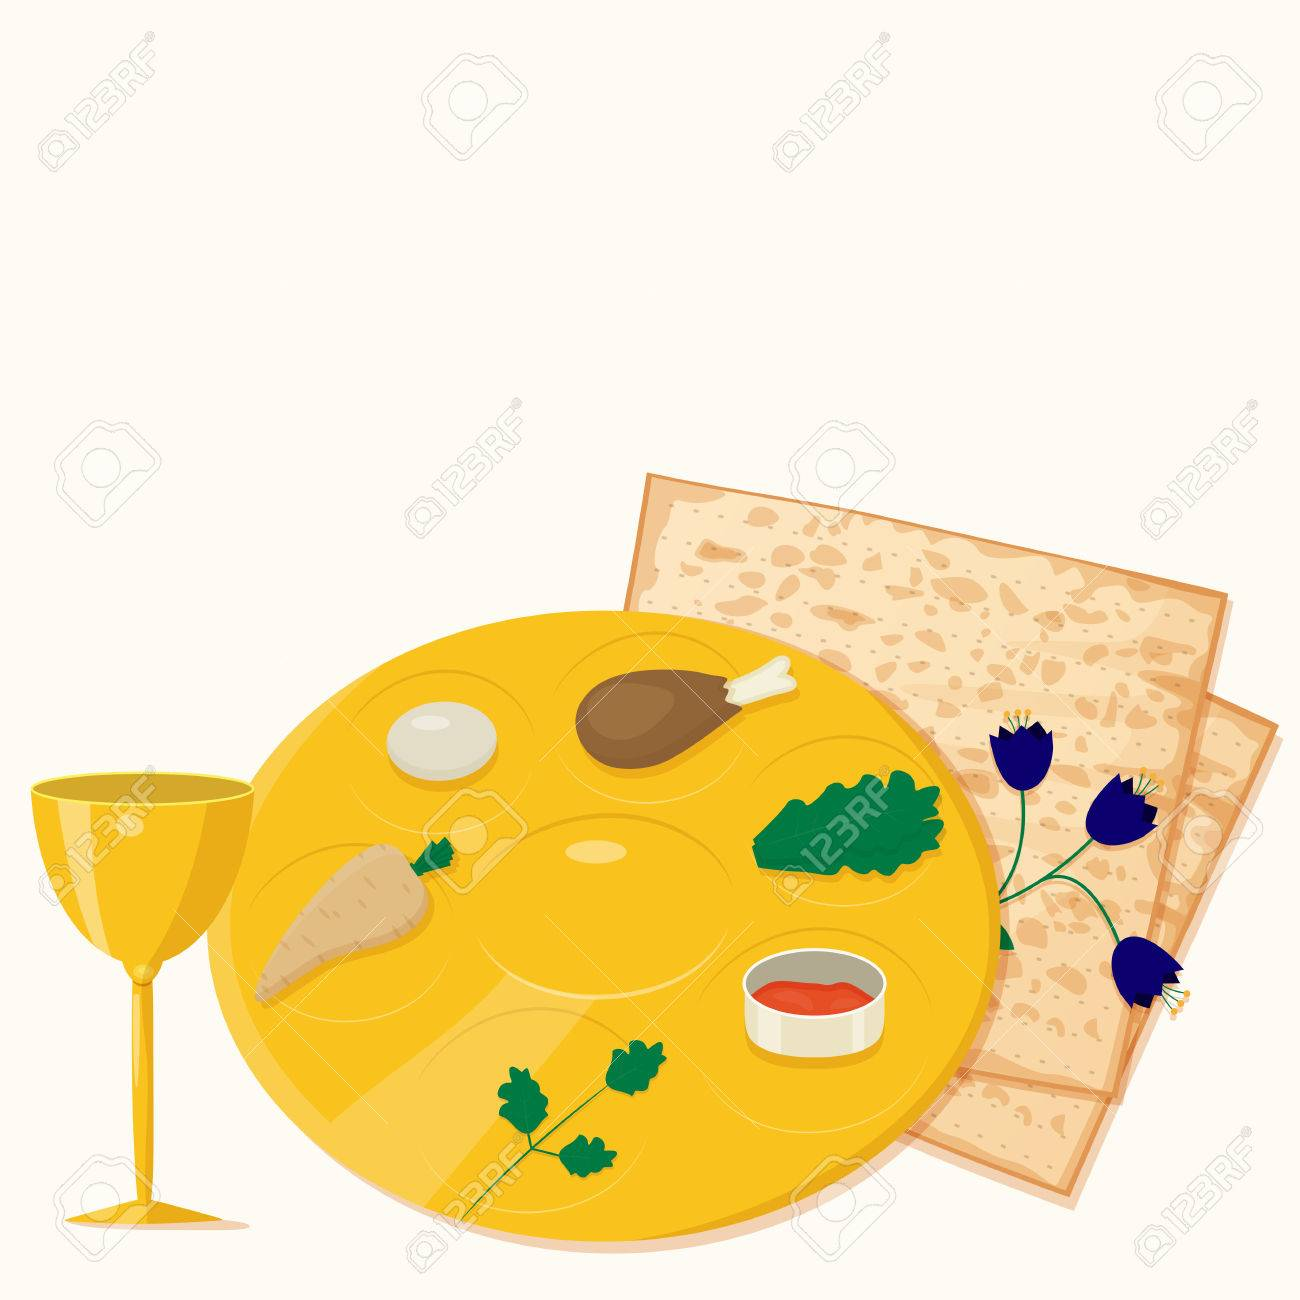 Illustration of passover seder plate with matzoh and wine royalty illustration of passover seder plate with matzoh and wine stock vector 54548370 buycottarizona